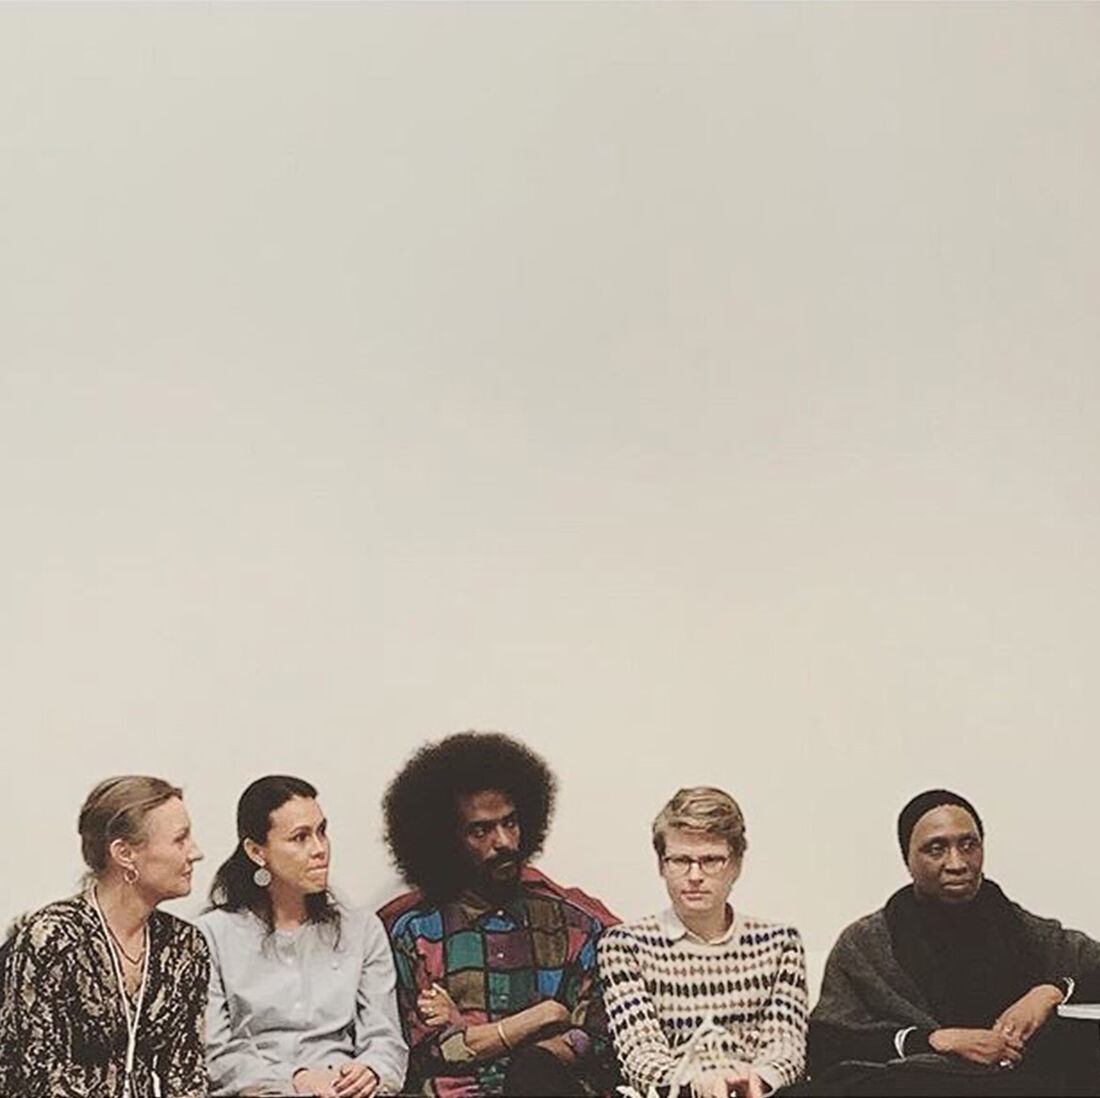 Eva-Lotta Flach (Galleri Flach), Macarena Olmus Dusant (art historian & independentwriter), Samuel Girma (Konsthall C), Theodor Ringborg (Bonniers Konsthall) and Karen Alexander (curator) on diversity in the art world. Photo: Corina Wahlin